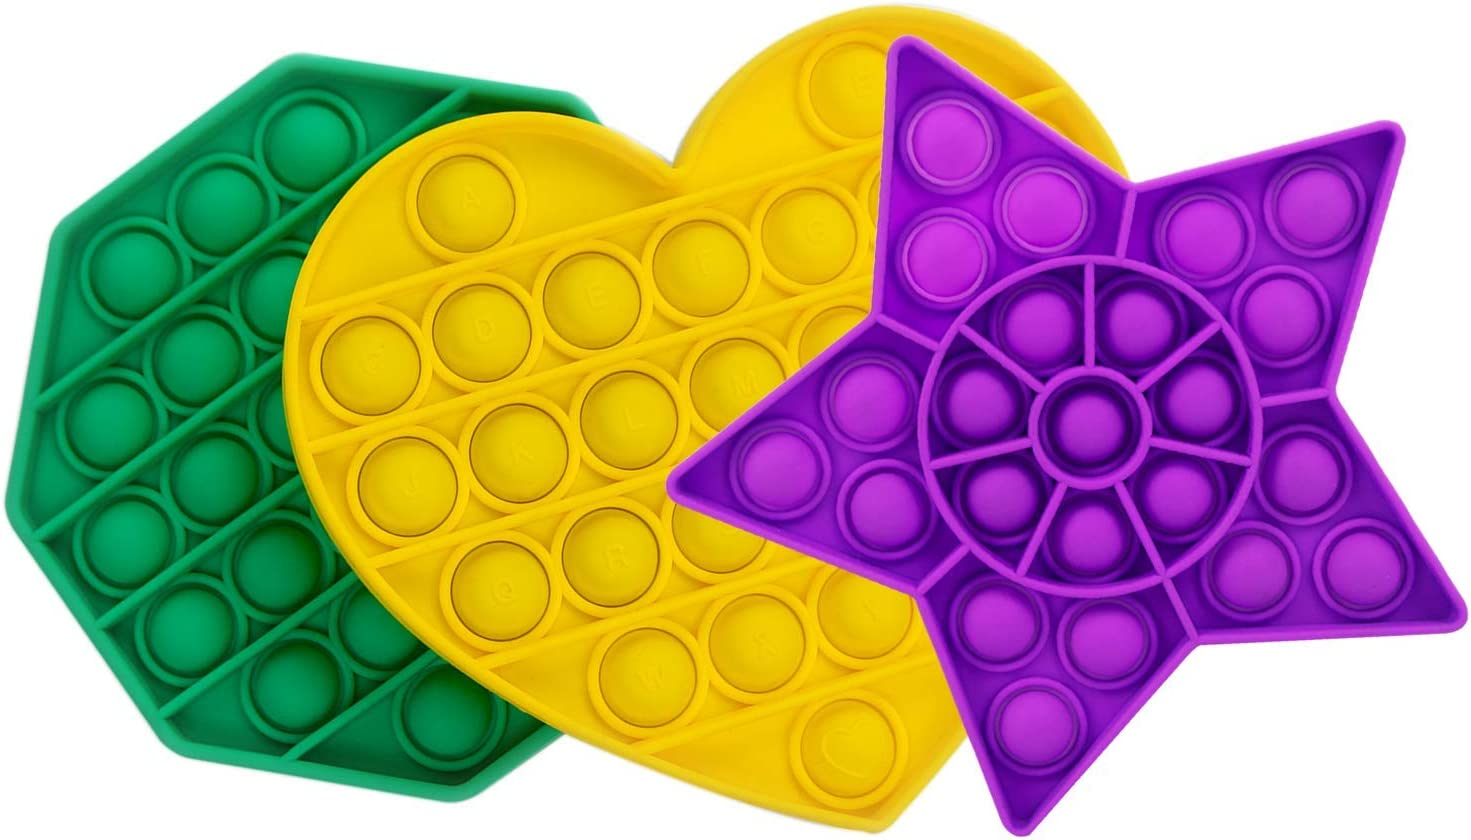 Feeke Silicone Bubble Sensory Fidget Toy, Push Stress Anxiety Irritability Reliever Tools, Autism Special Need, Sensory Squeeze Gift for Kids Toddlers Adults Teens Home School Office BPA Free